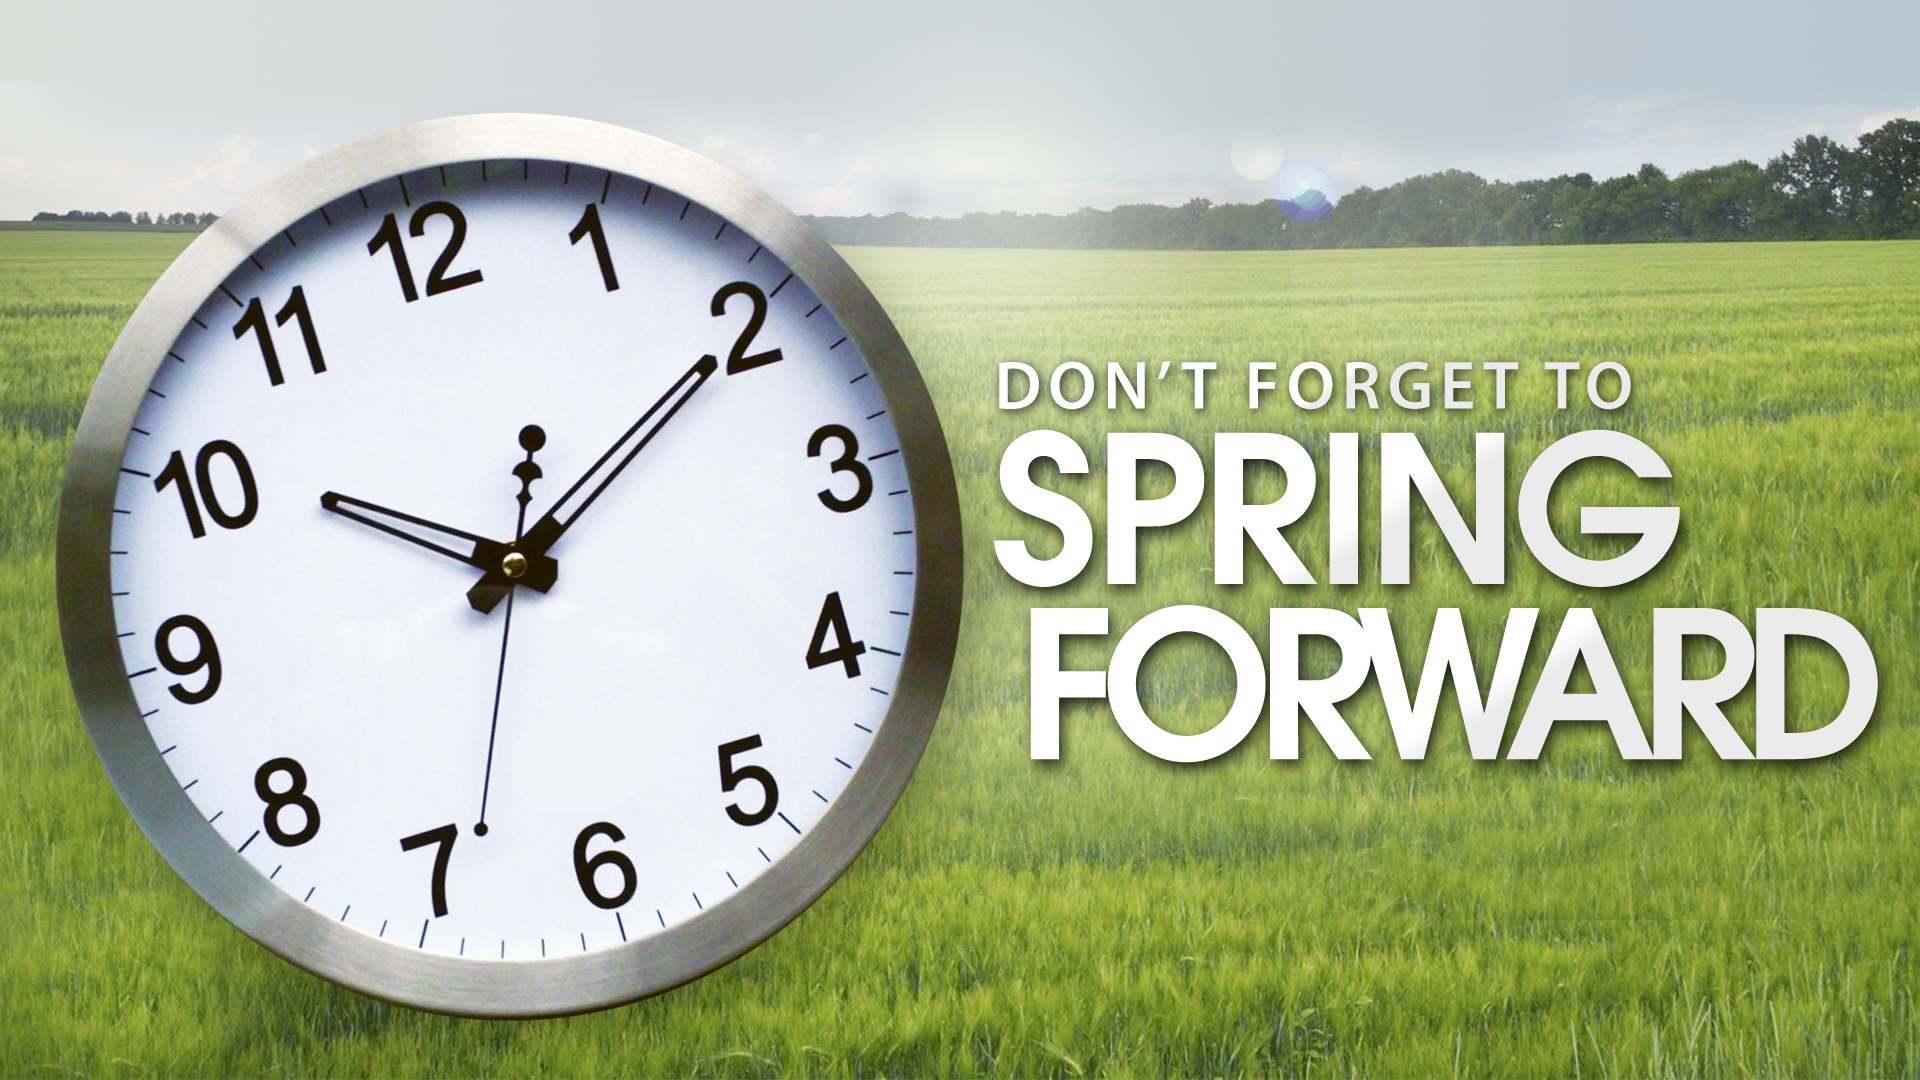 Spring Forward One Hour | Matzav.com